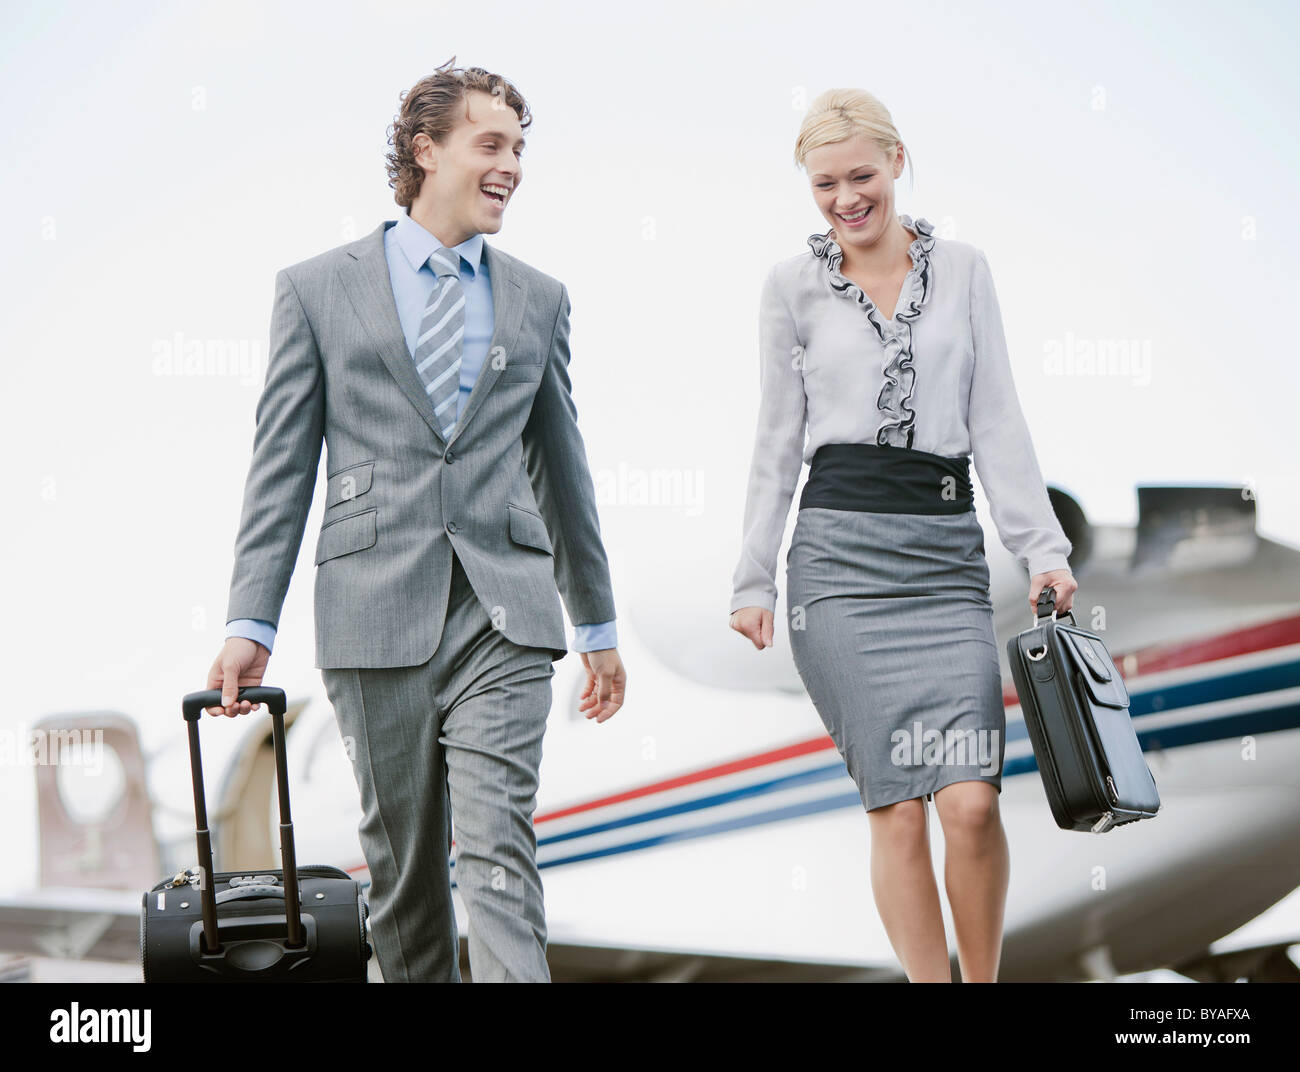 Business Executives smiling - Stock Image